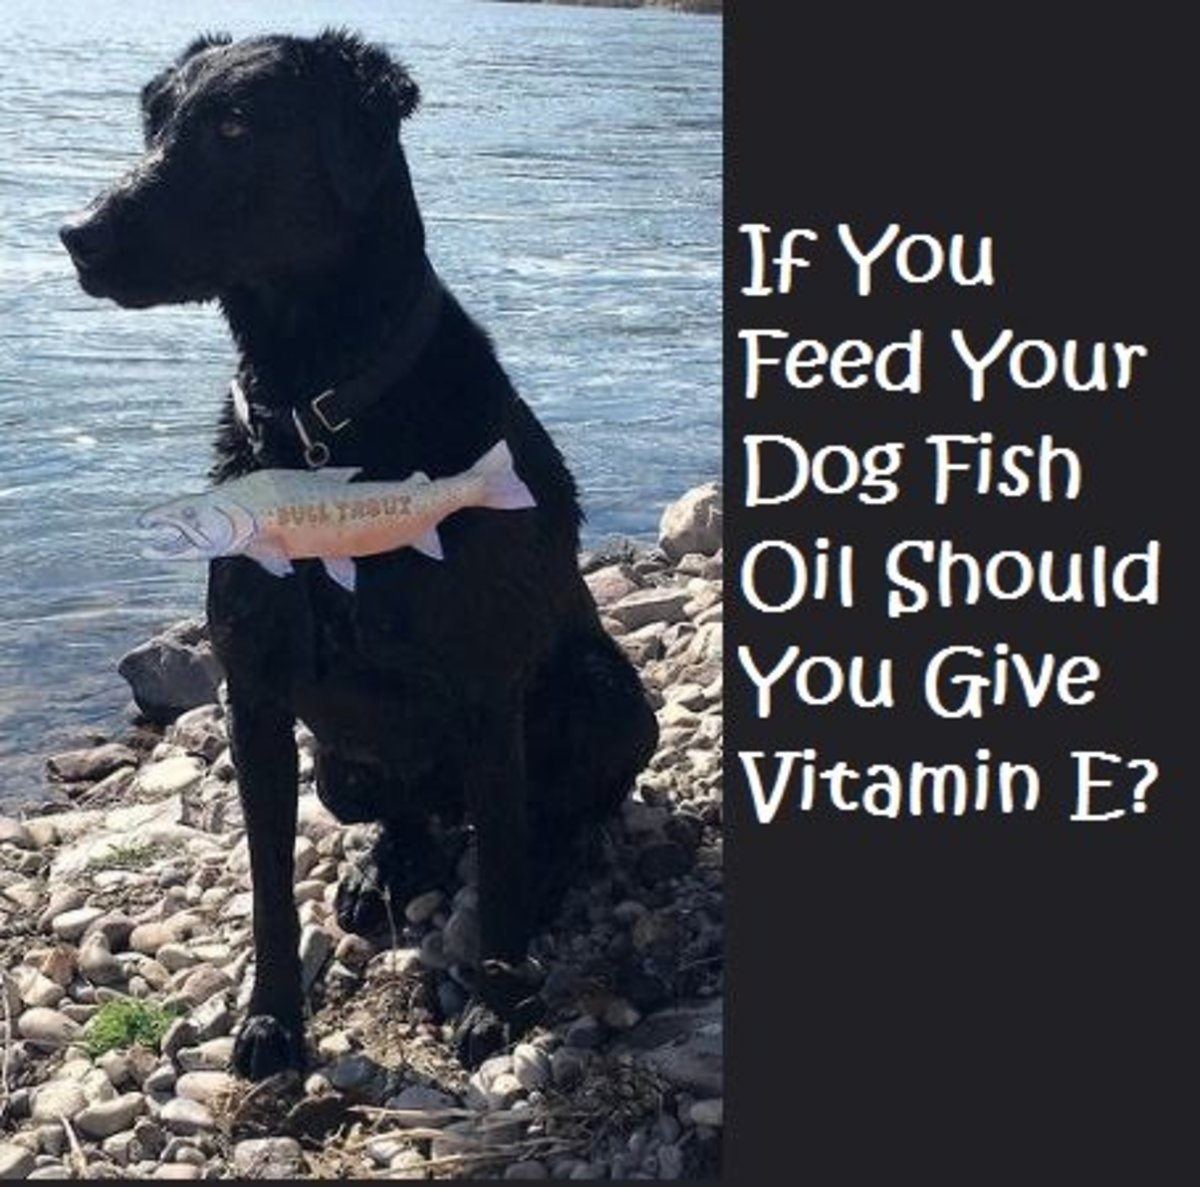 If You Feed Your Dog Fish Oil Should You Give Vitamin E?